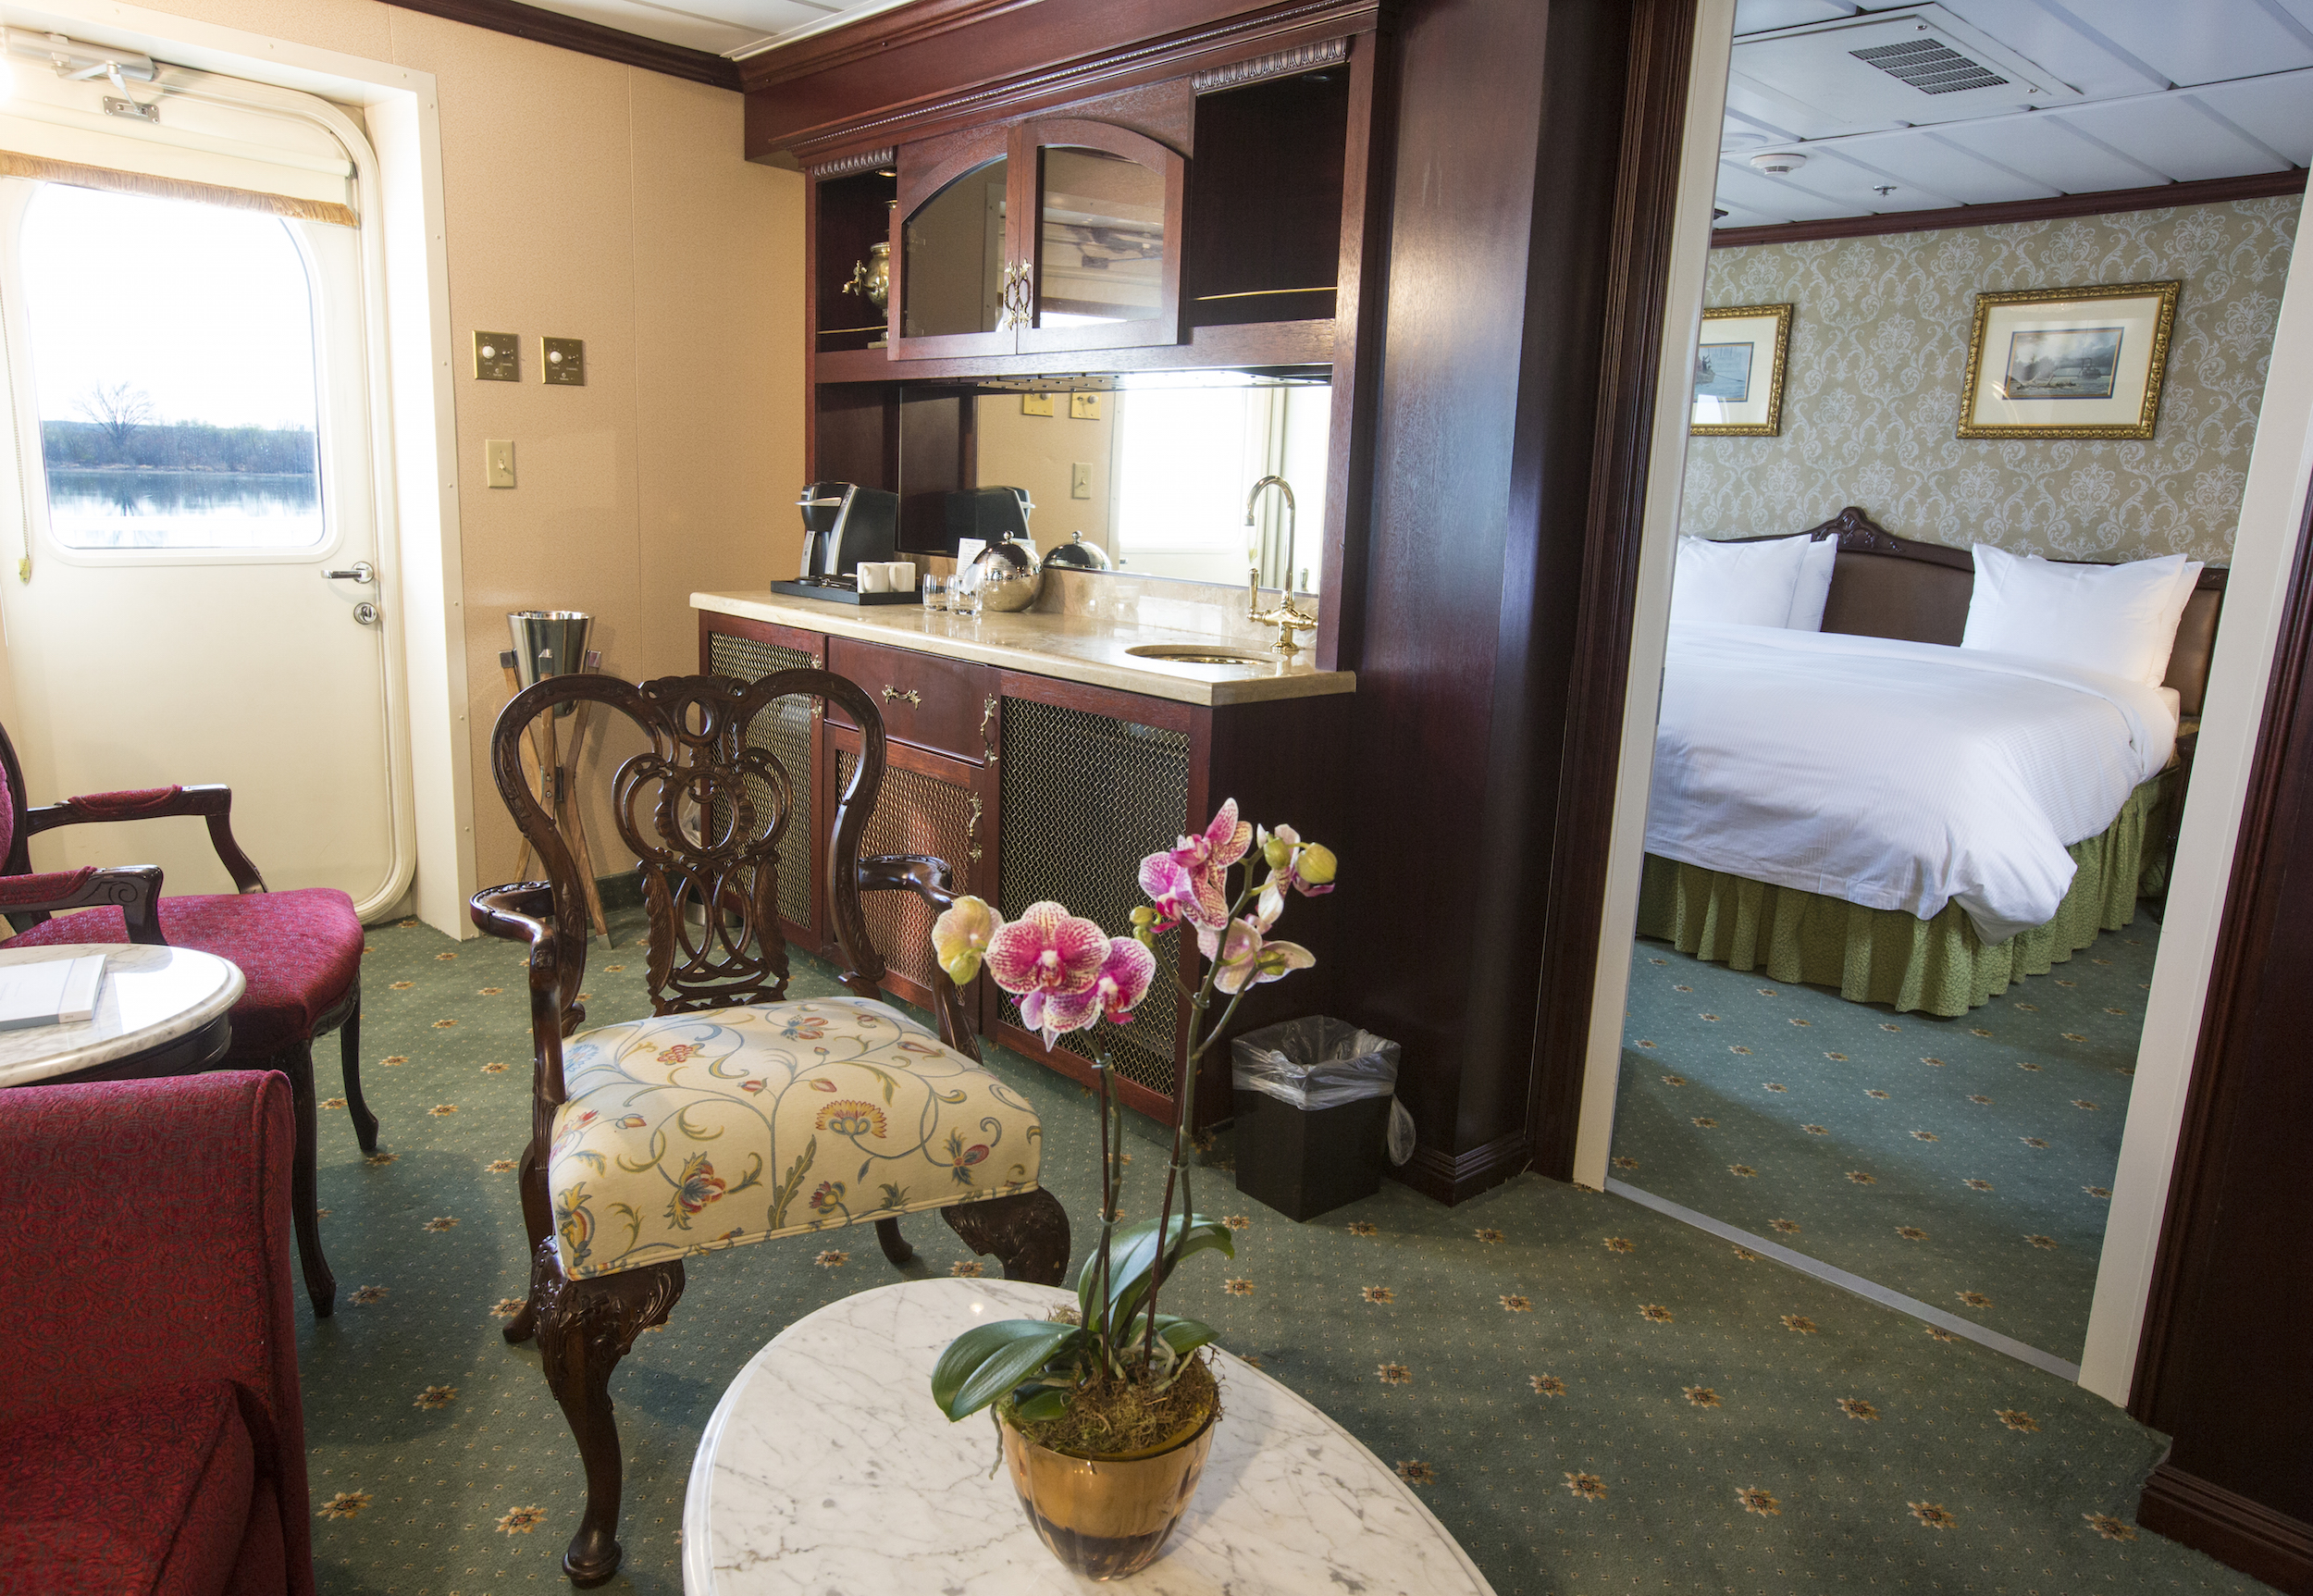 American Queen Steamboat Company American Empress Accommodation Luxury Suite with Veranda.jpg